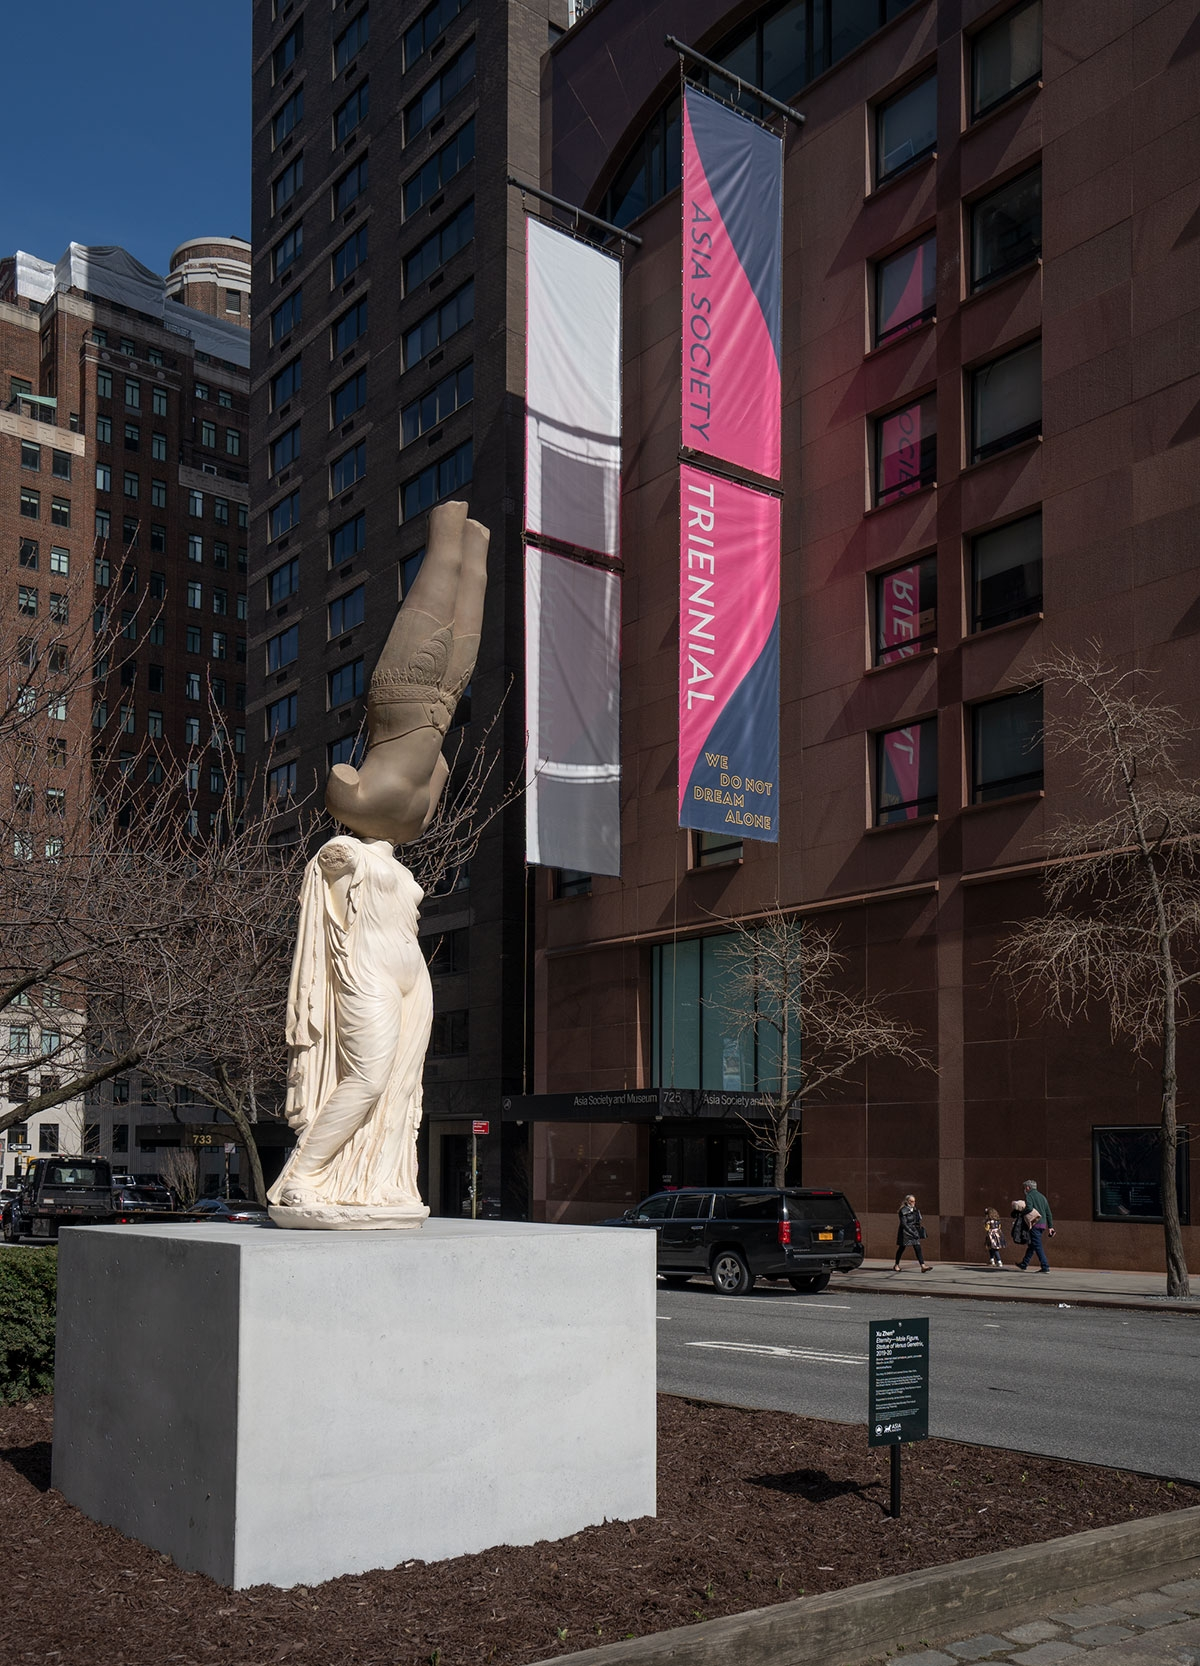 A plinth appears on a median outside of Asia Society Museum. On it is a sculpture composed of two casts: on top an inverted bronze-colored eleventh-century male figure from Cambodia, balanced atop a light beige cast of a second-century Roman figure of Venus Genetrix. Neither figure has a head.